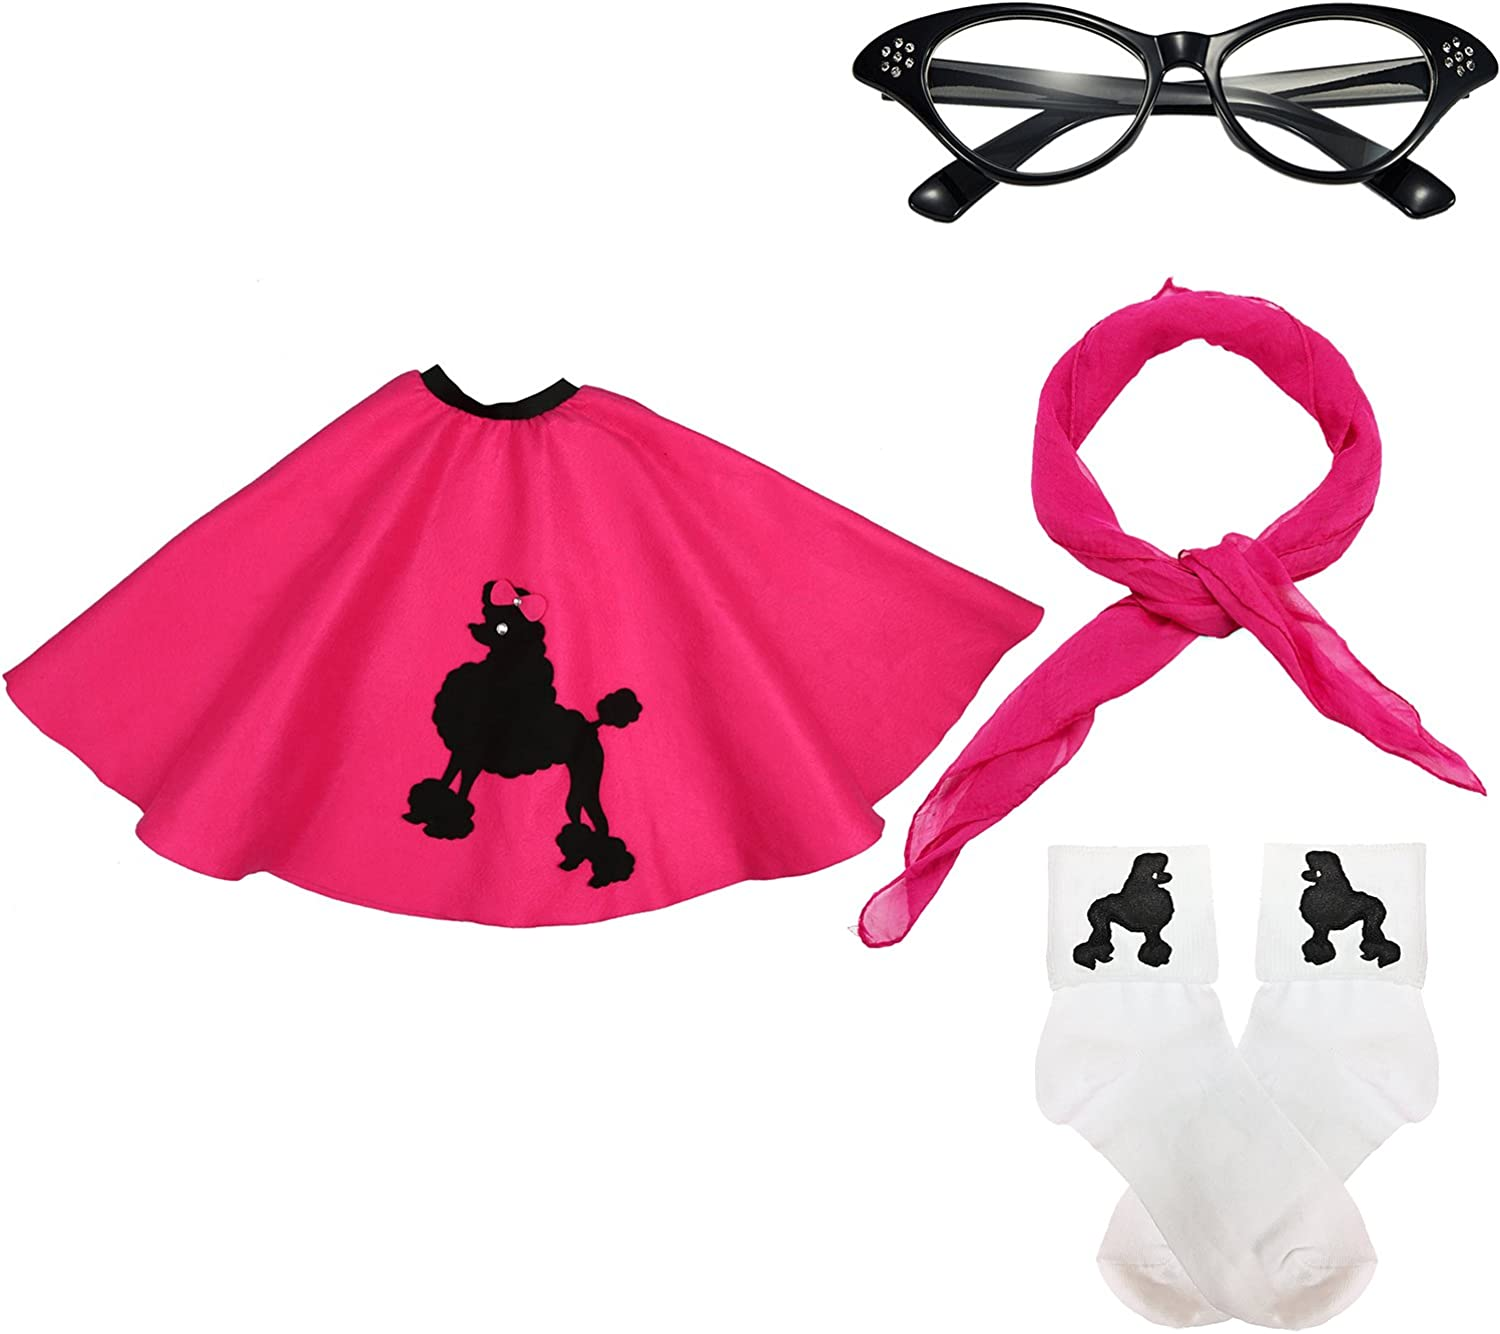 50s Womens Costume Accessory Set - 1950s Poodle Skirt, Chiffon Scarf, Cat Eye Glasses,Bobby Socks w/Poodle Applique